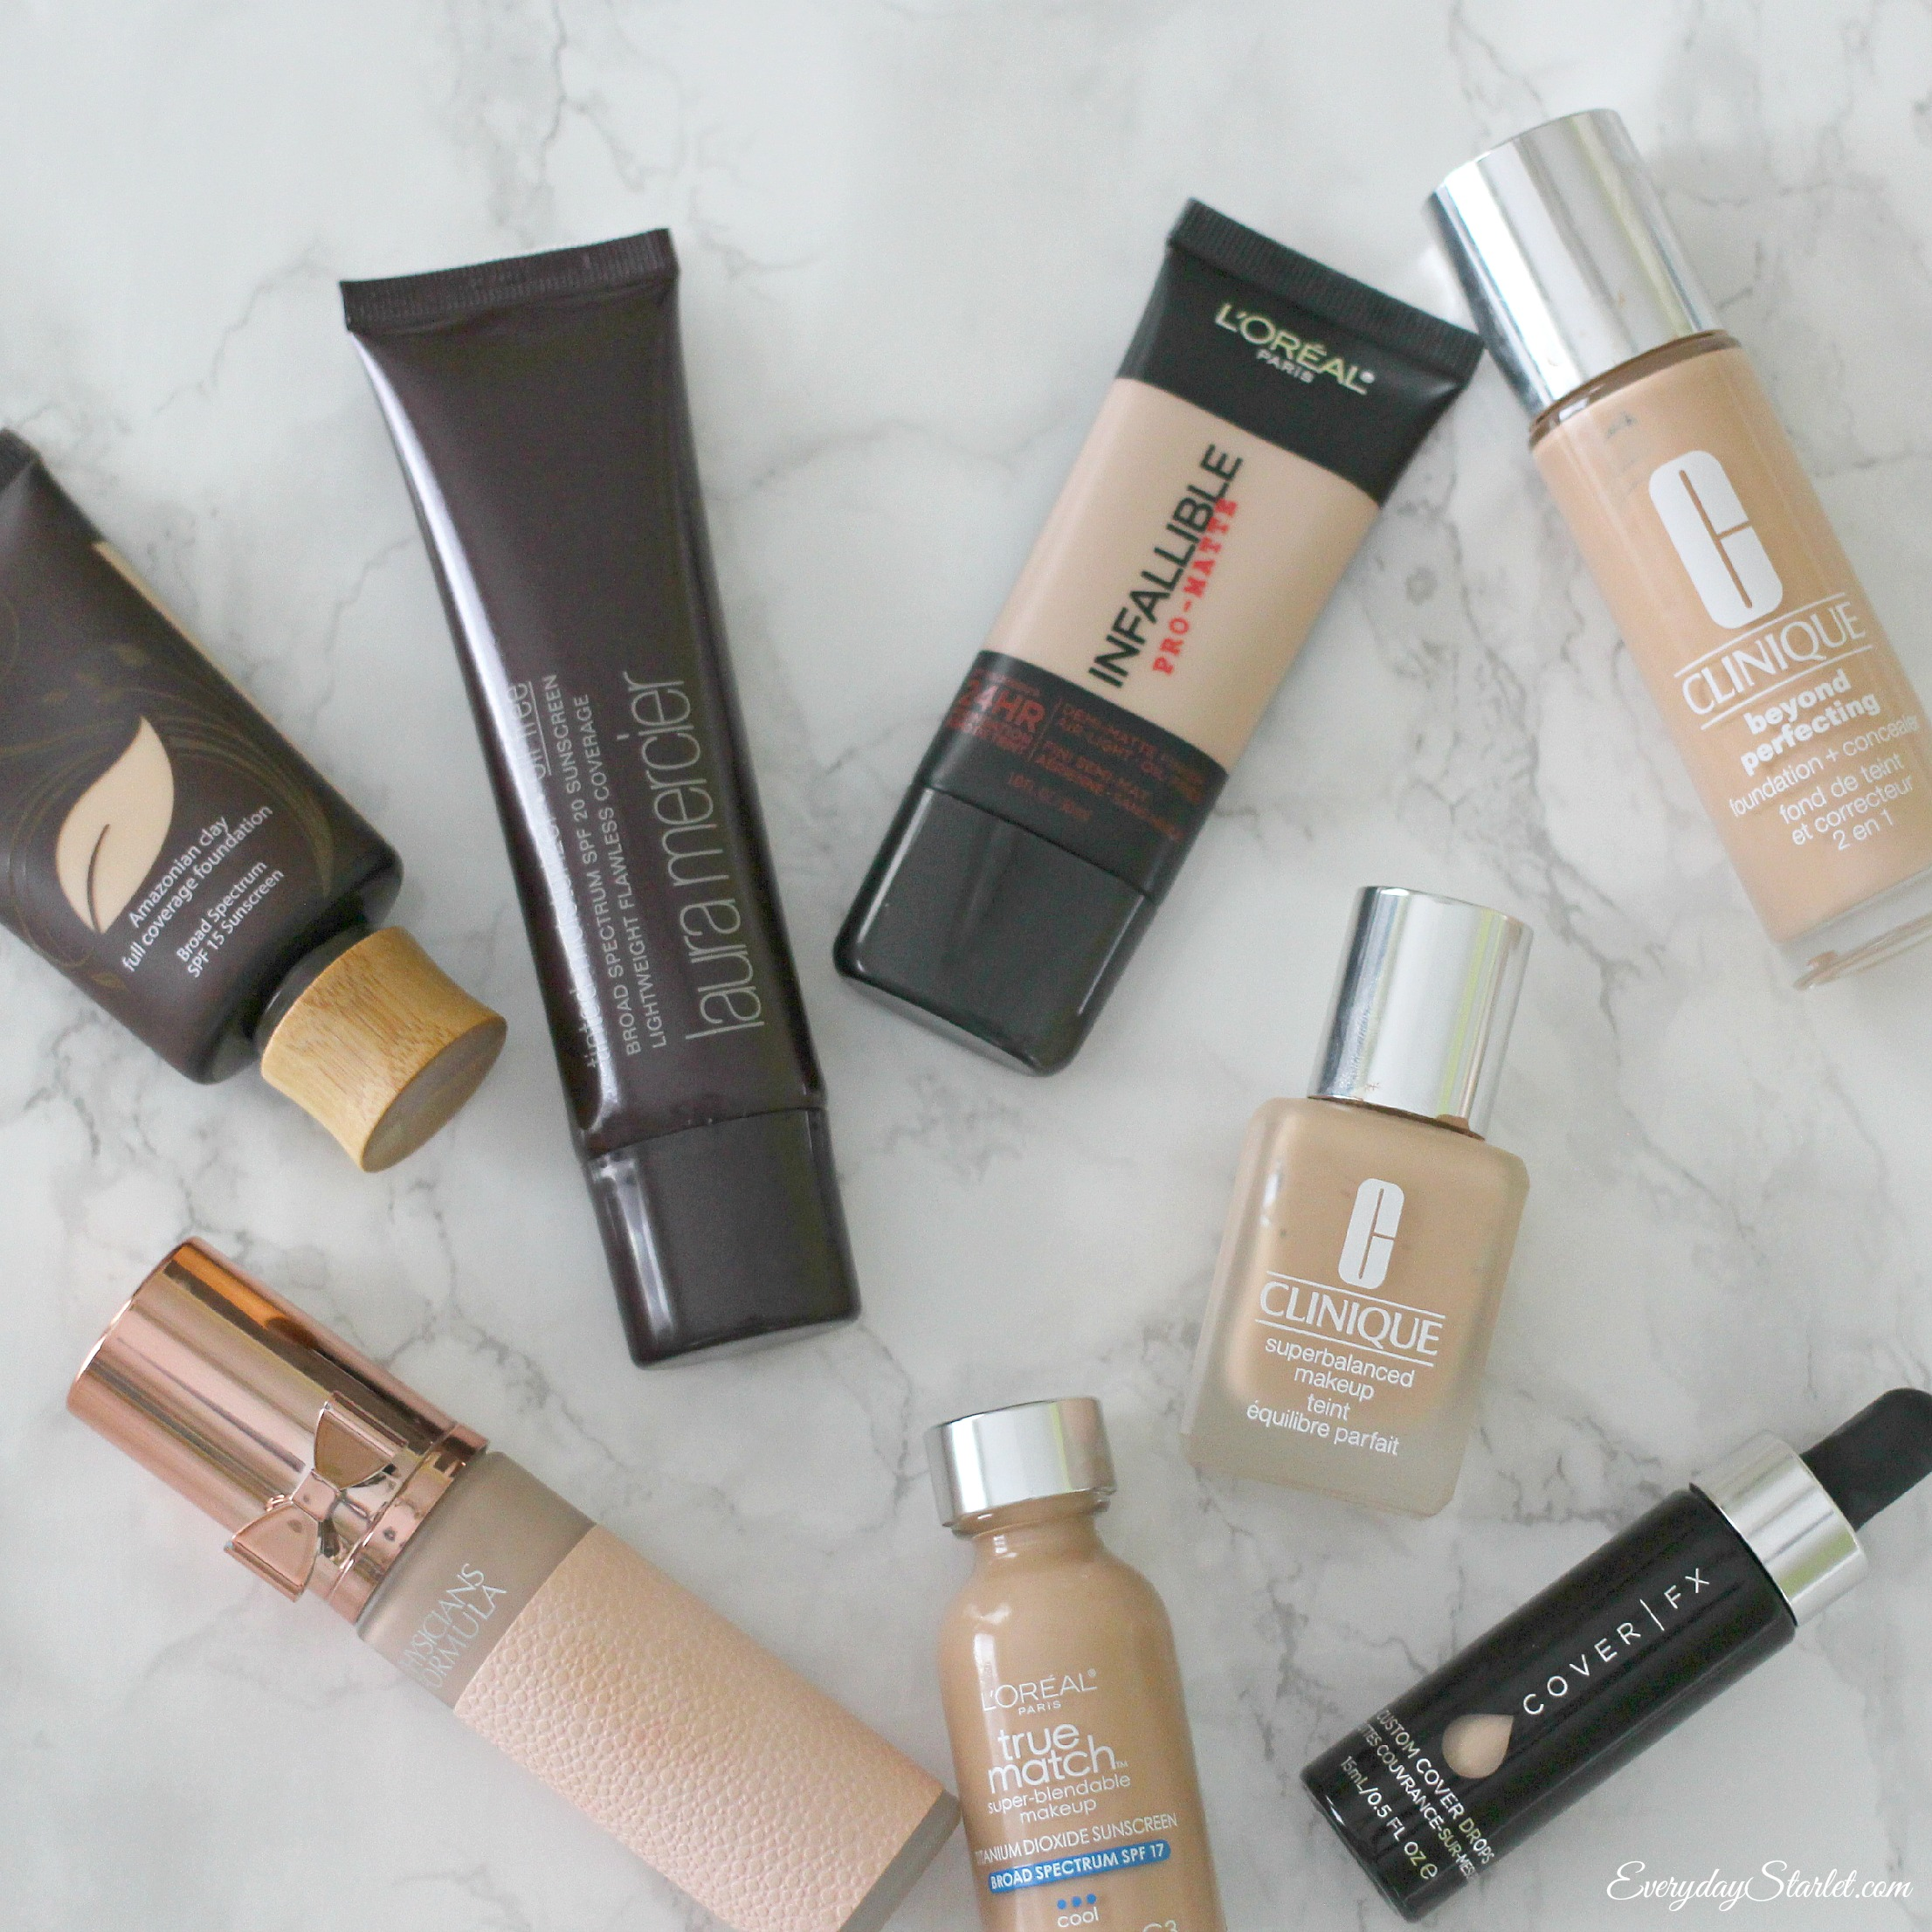 Basic Foundation Primer Wardrobe A Different Kind Of Makeup Collection Video Everyday Starlet